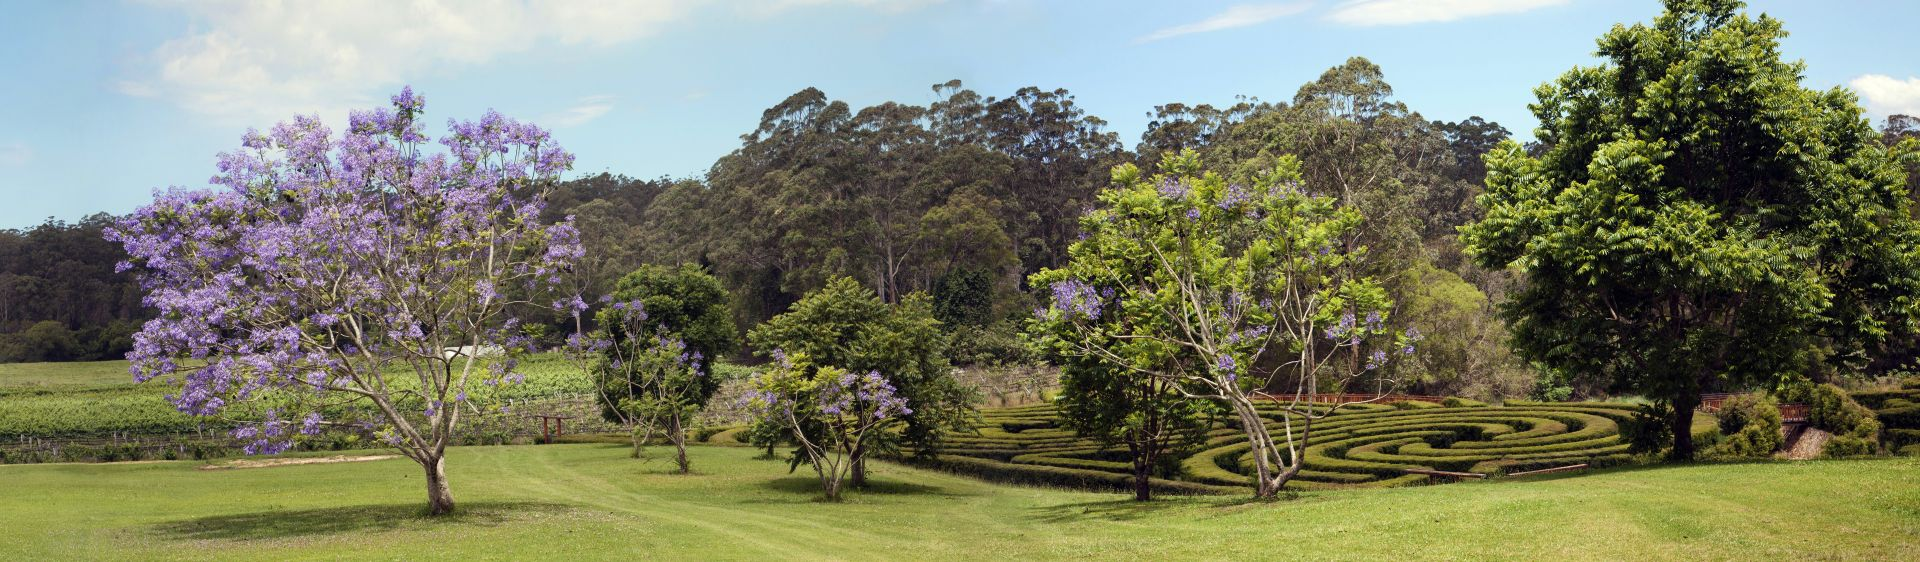 The Bago Maze at the Bago Maze and Winery in Wauchope, NSW, Australia